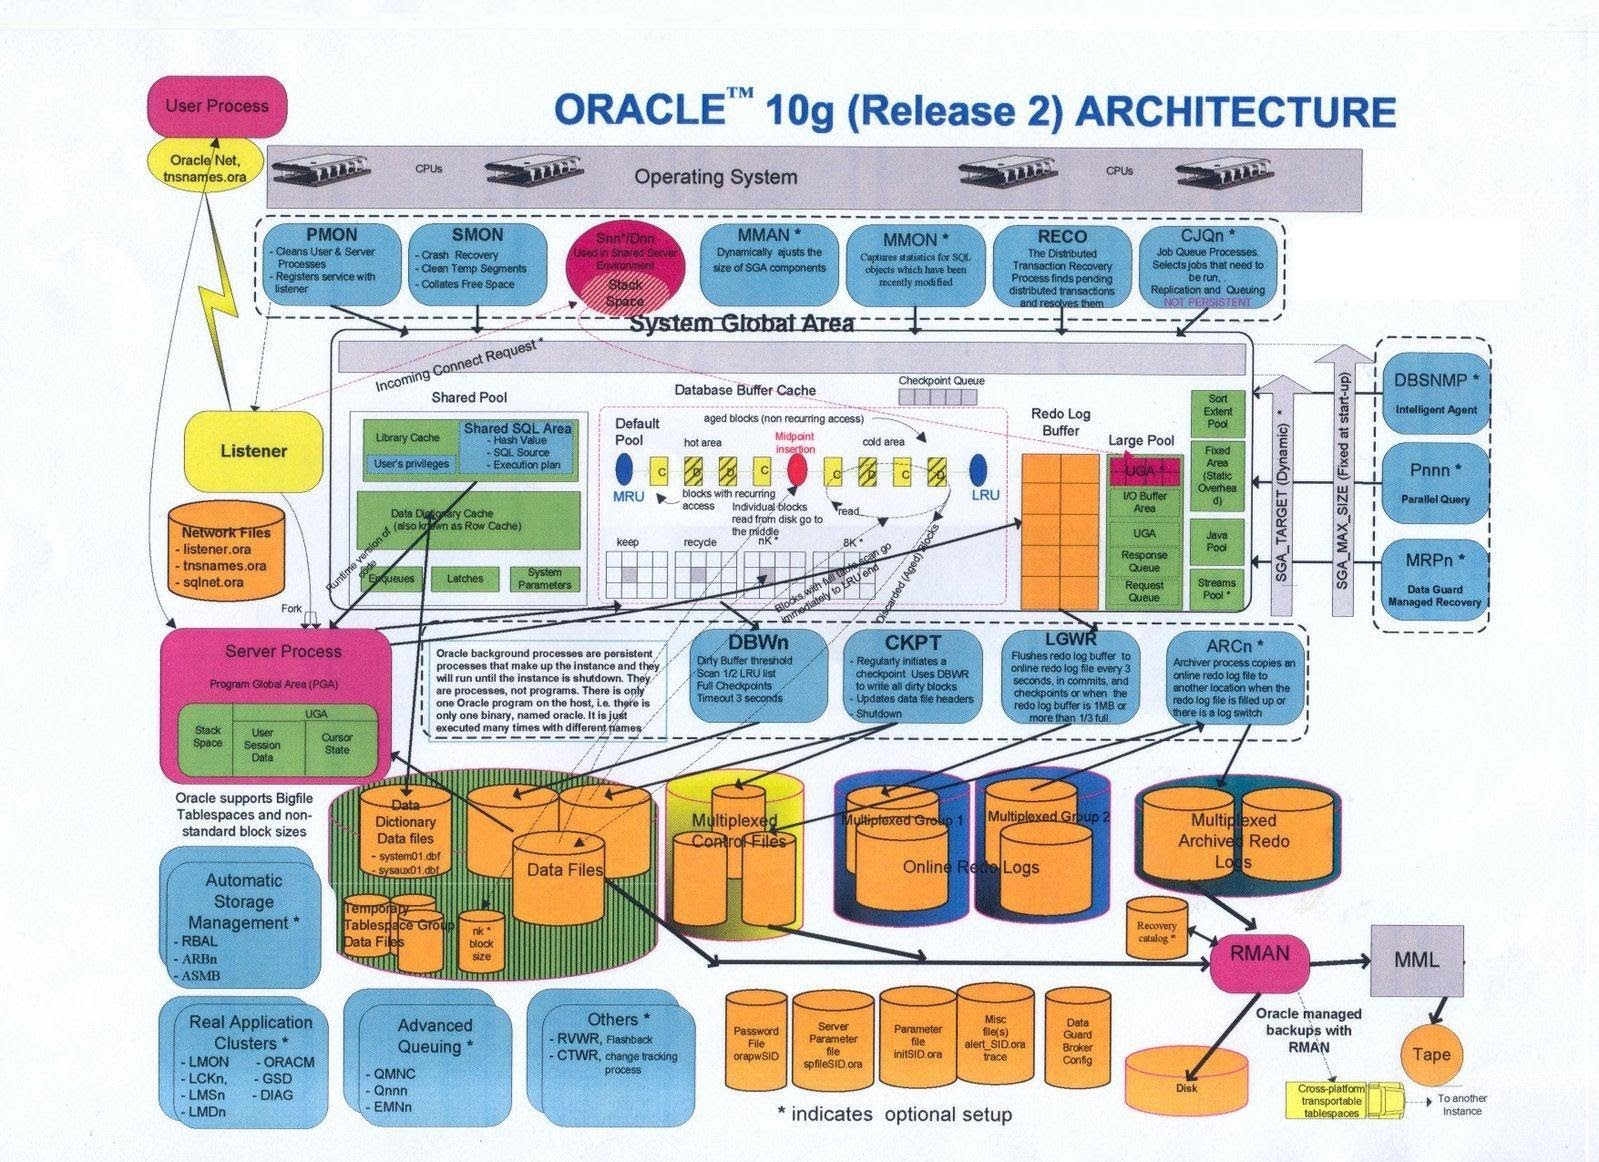 Being technical it is the perfect article on oracle architecture oracle is an rdbms relational database management system the oracle database architecture can be described in terms of logical and physical structures altavistaventures